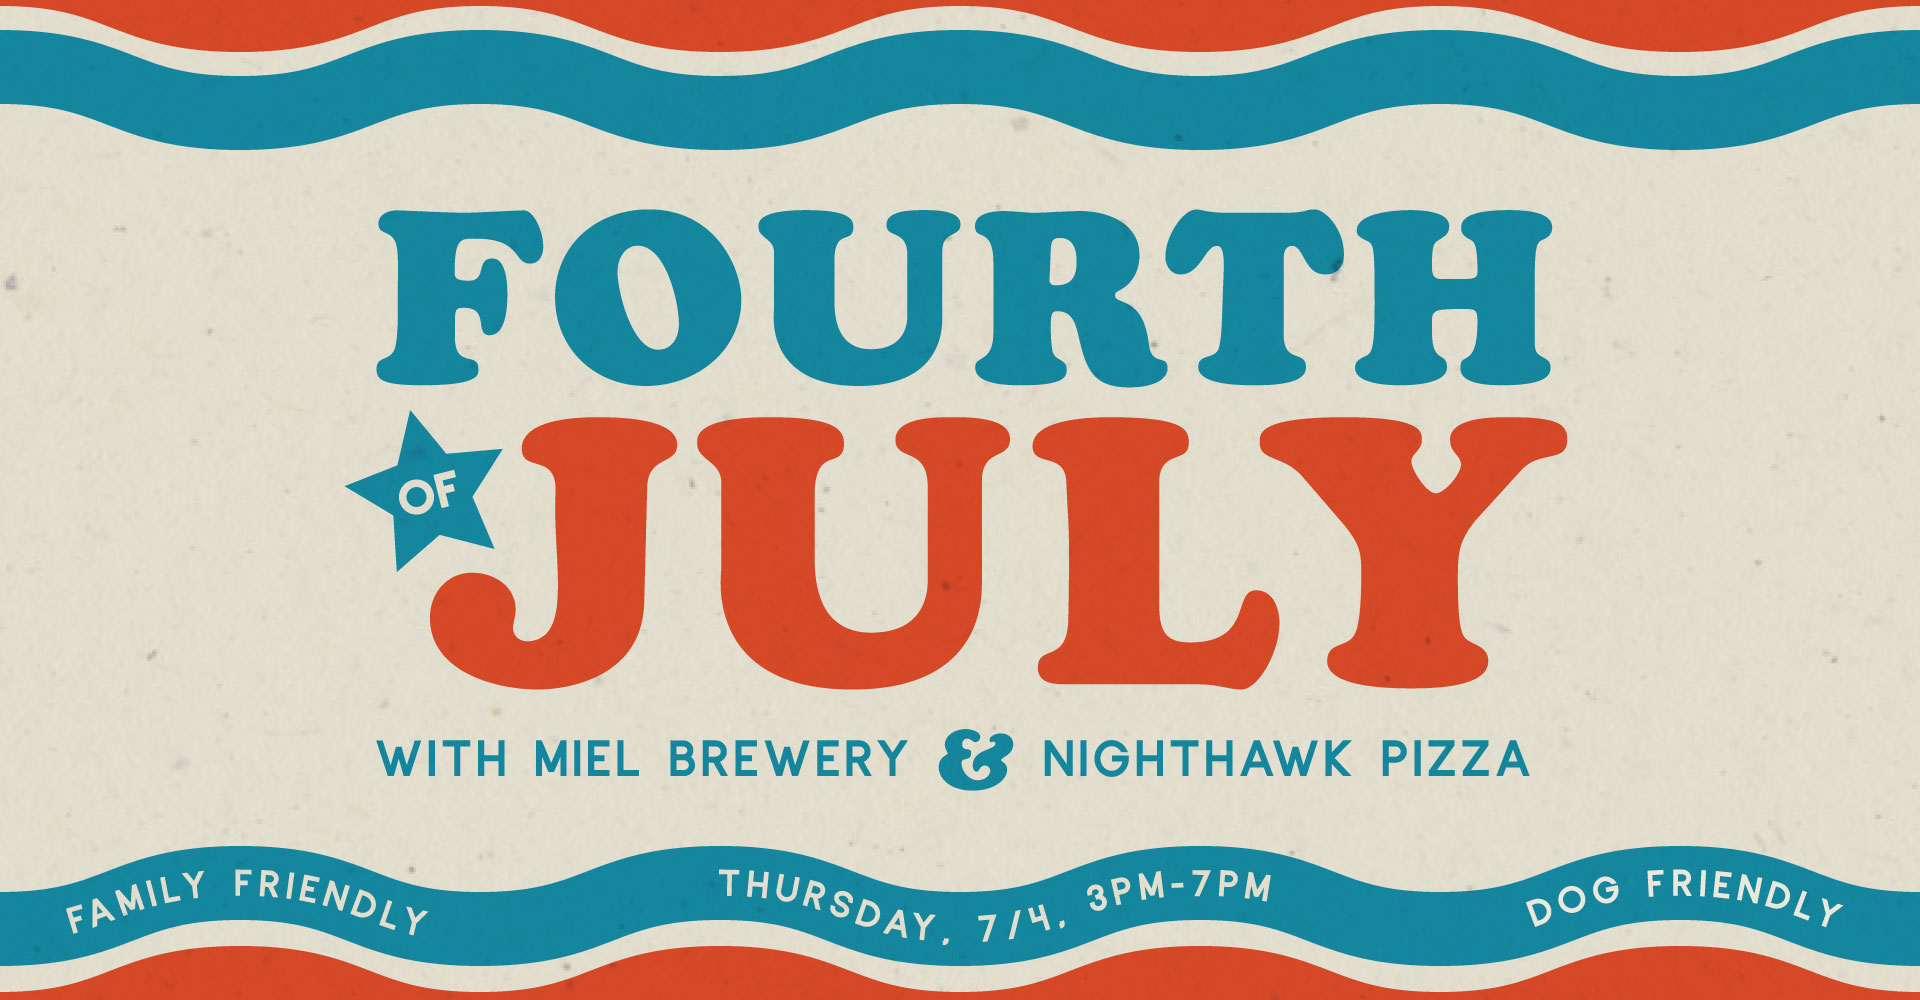 Miel Brewery_New Orleans_4th of July 2019